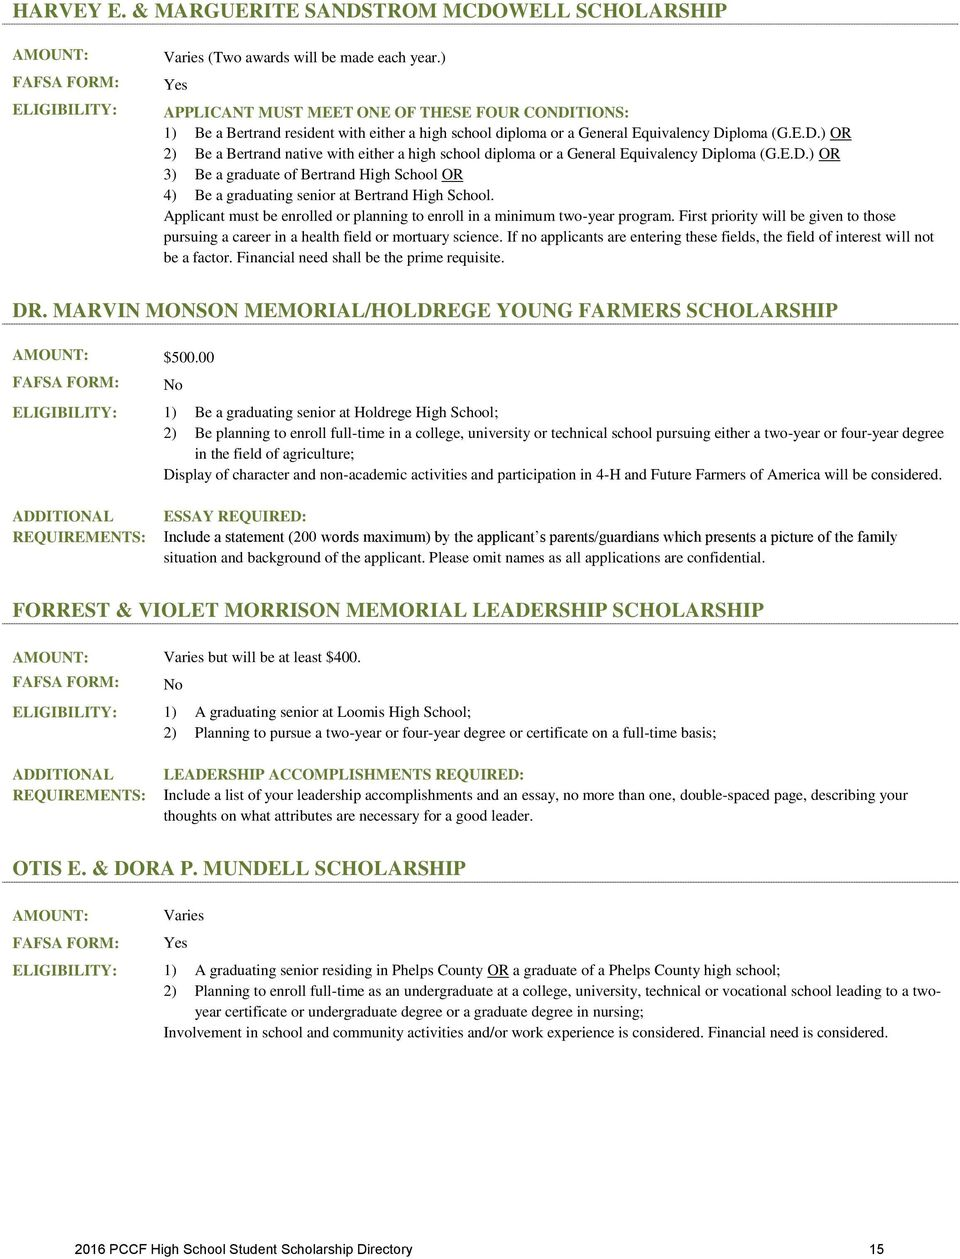 high school student scholarship directory pdf e d or 3 be a graduate of bertrand high school or 4 be